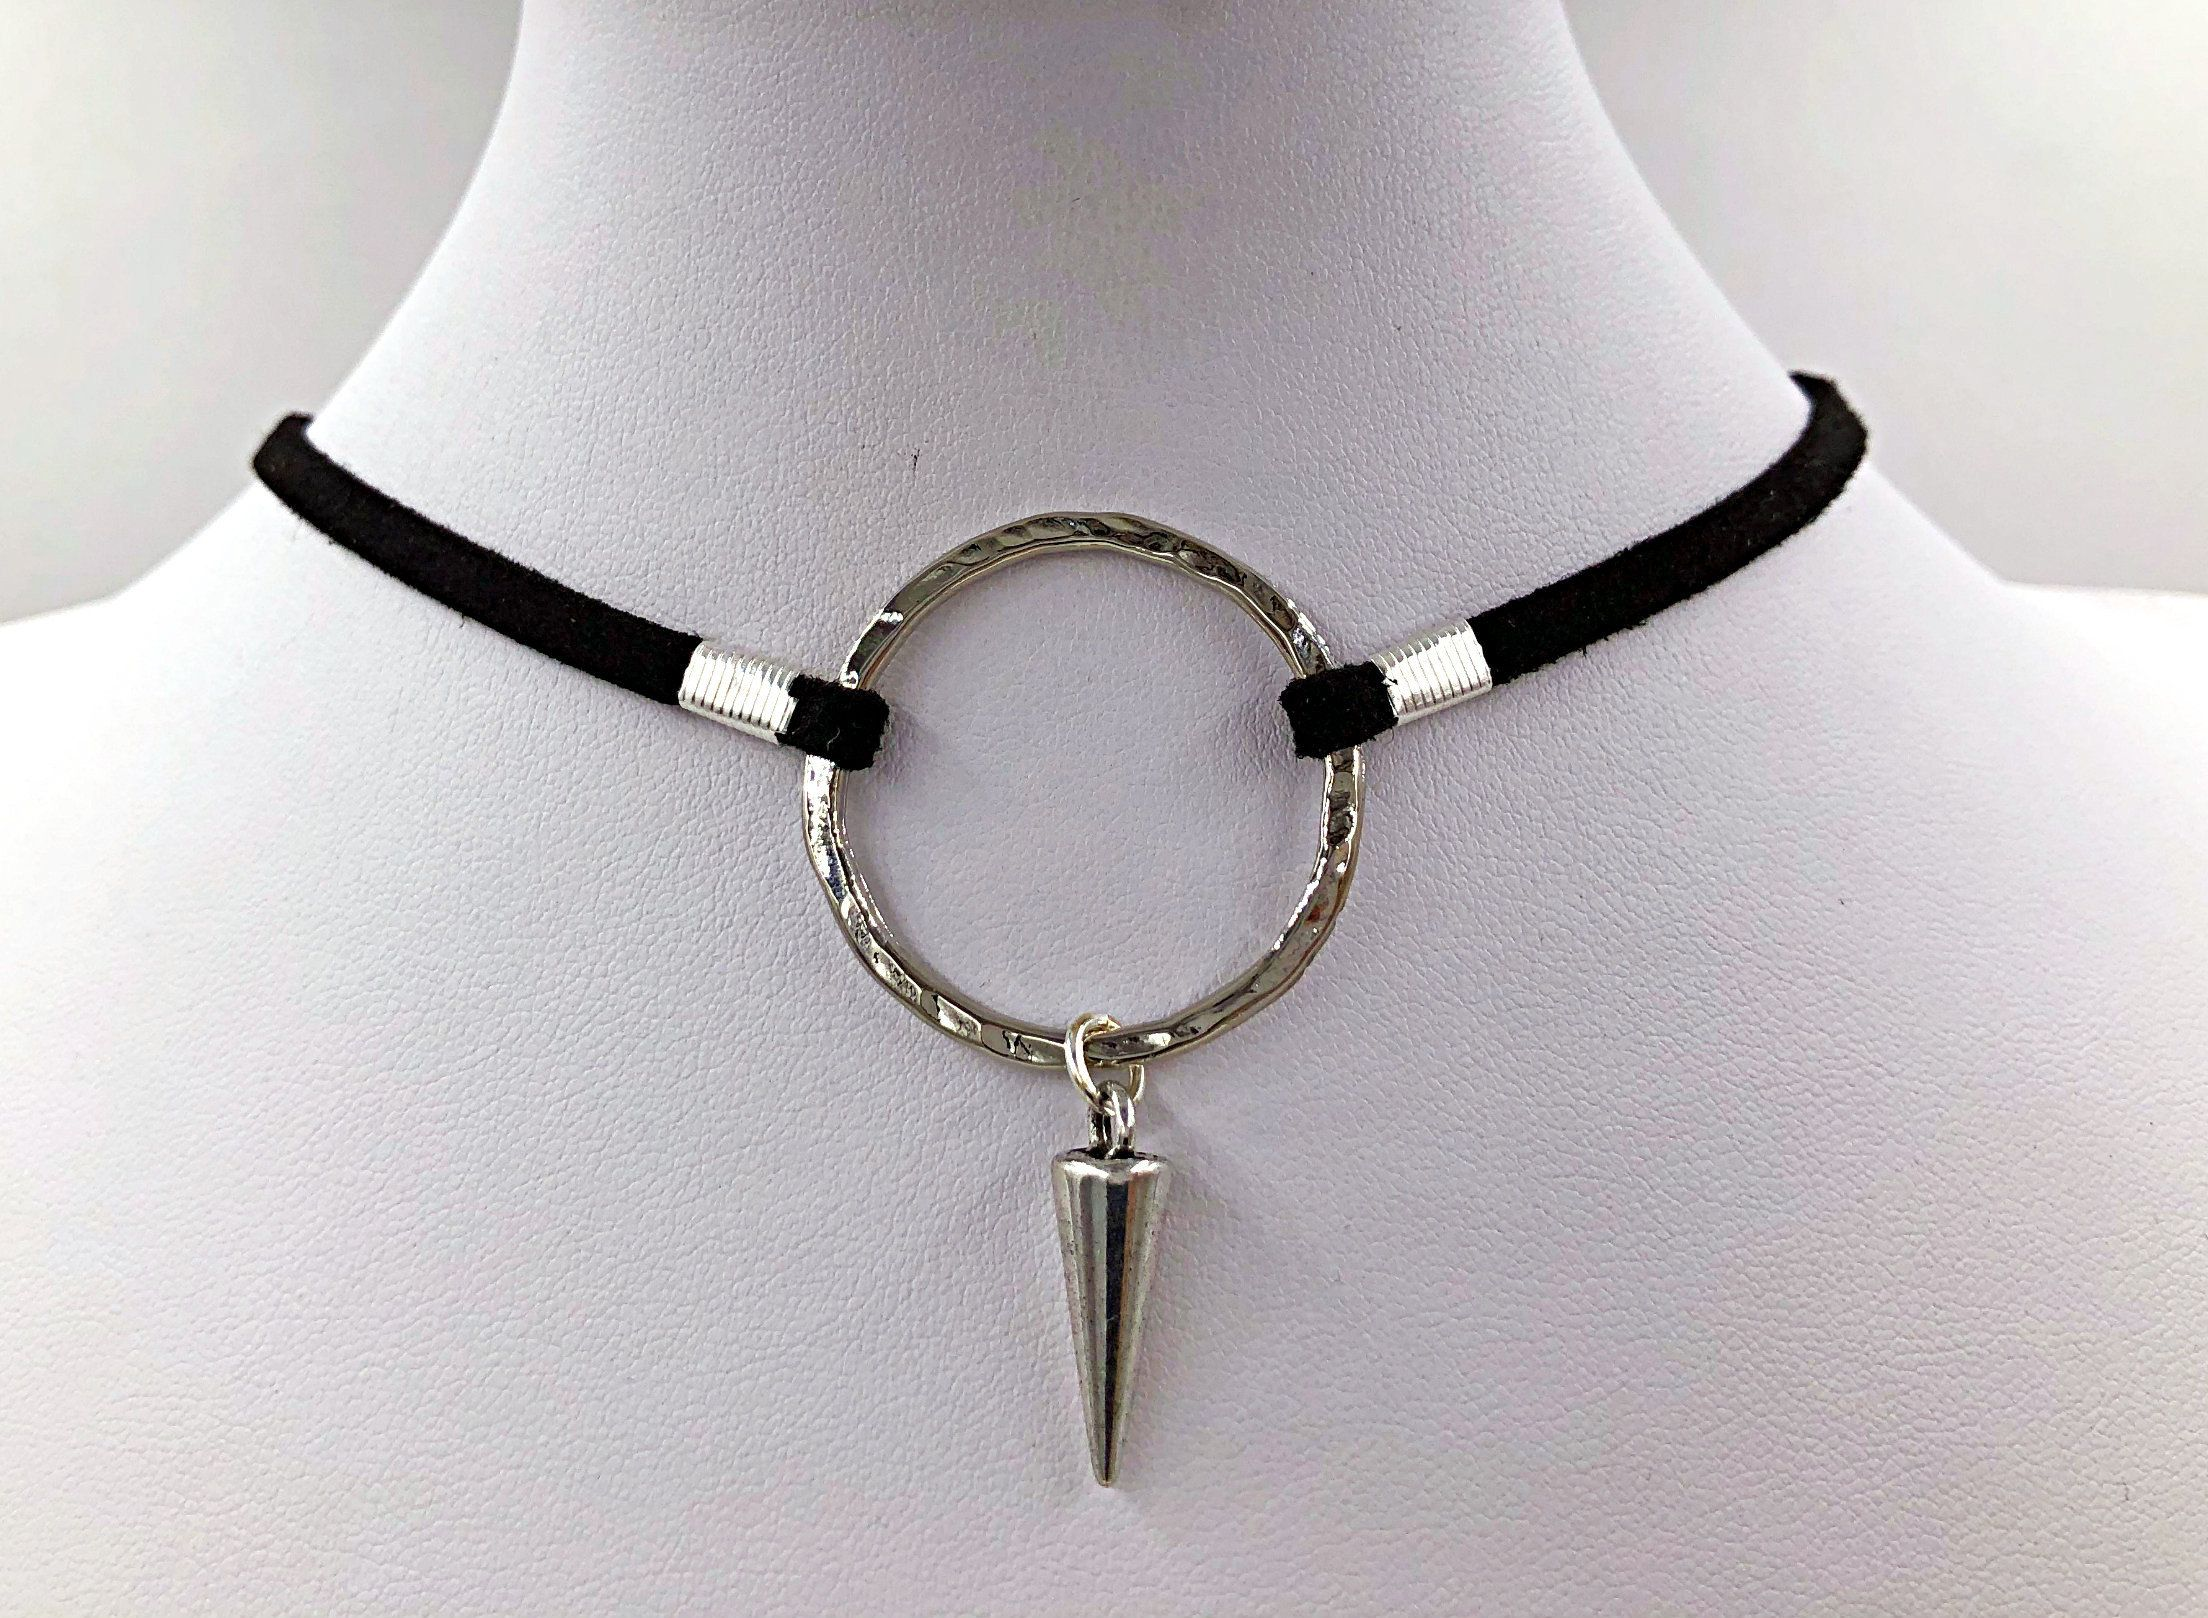 Necklace collar for bdsm are